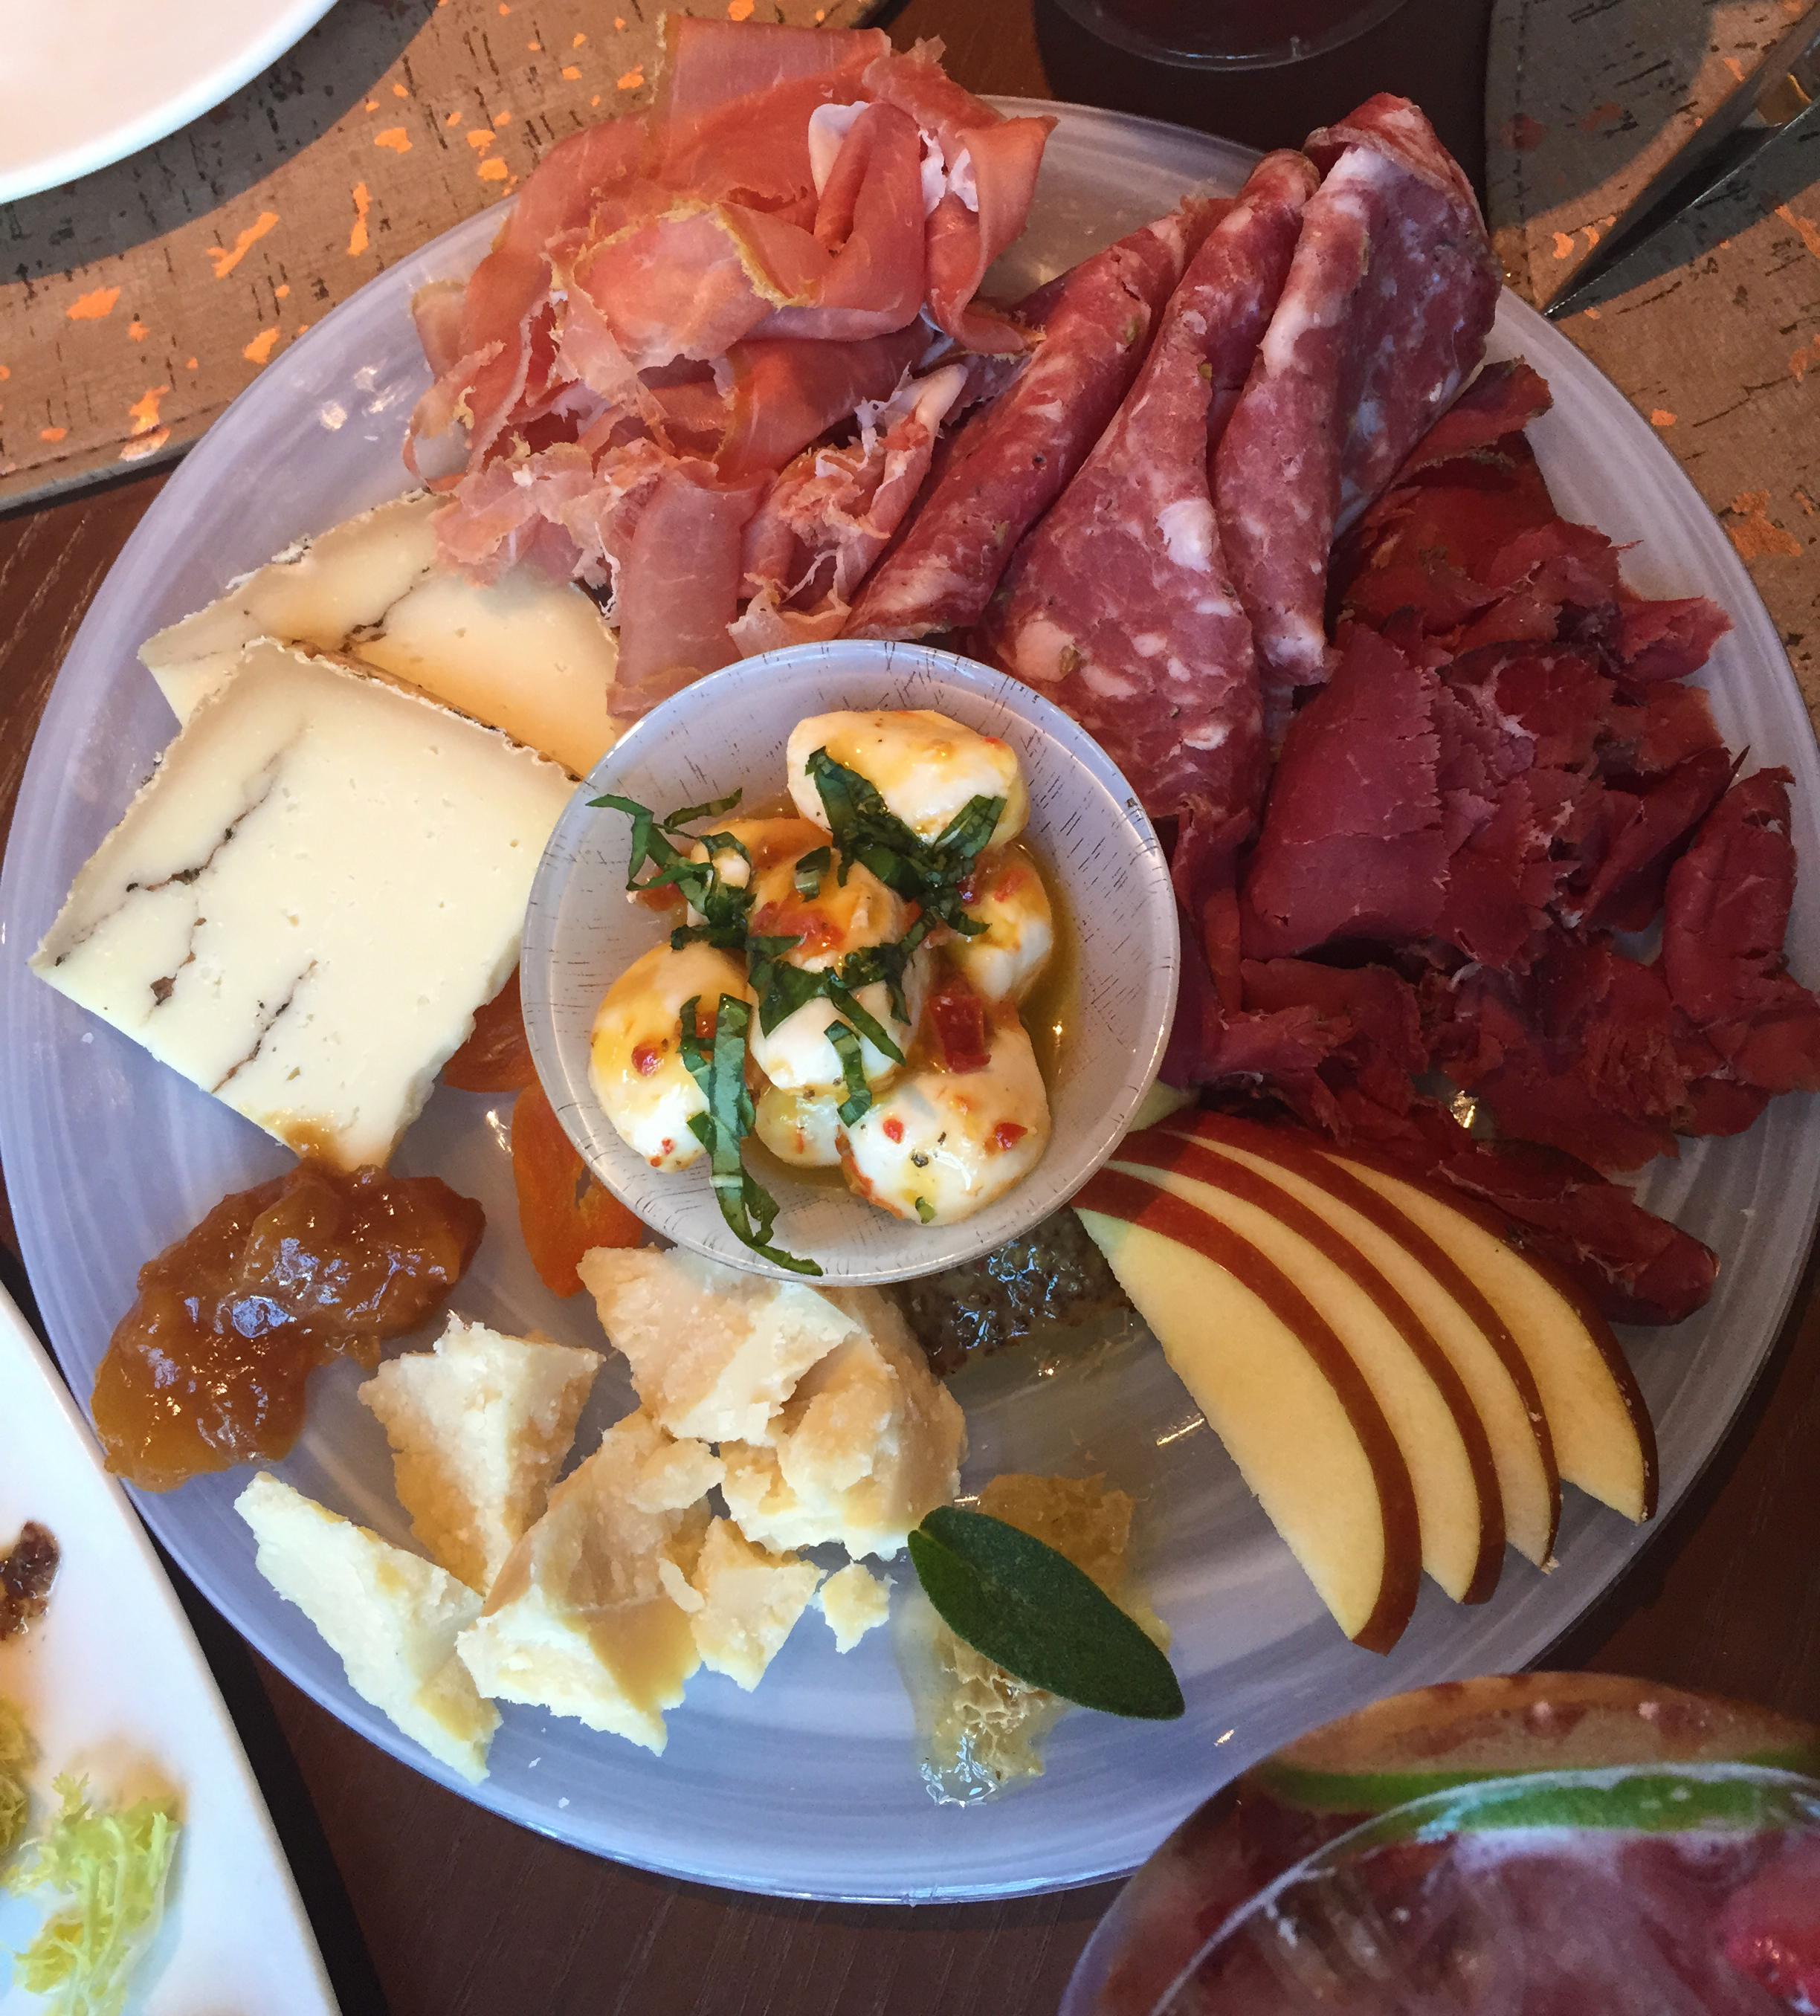 A selection of salumi, prosciutto, cheeses and fruit